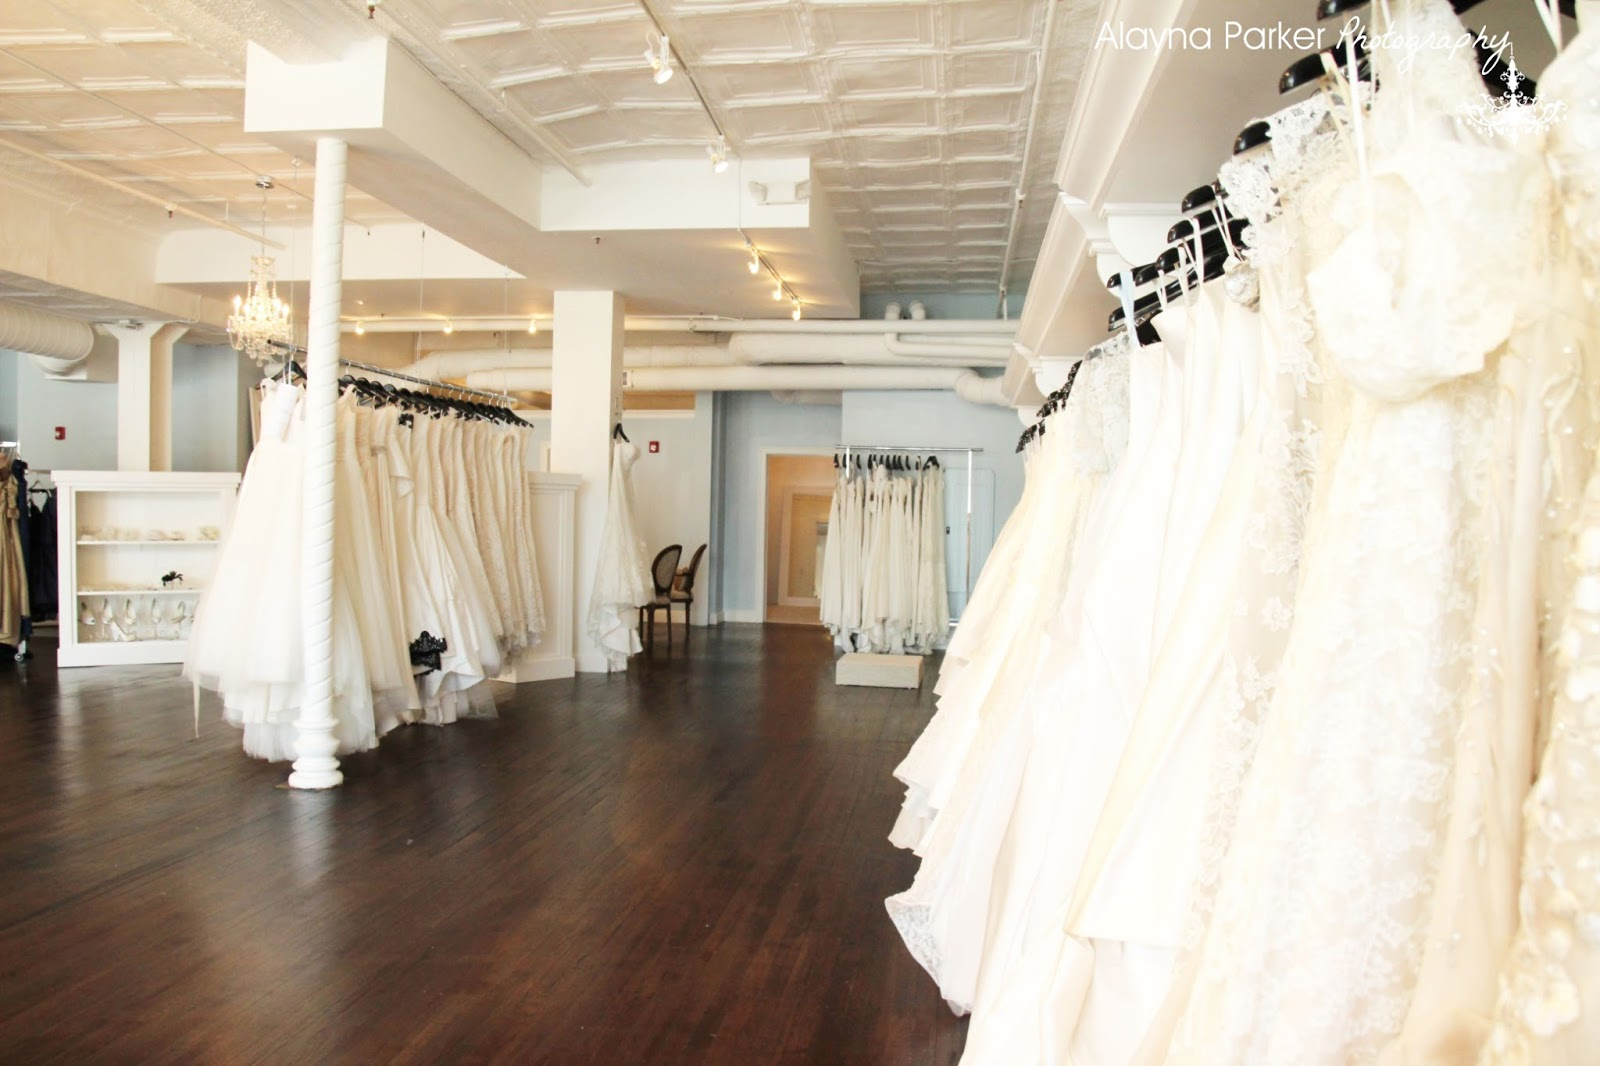 c6f68f557 Enter into bridal gown heaven! La Jeune Mariee is a downtown Columbus  boutique that is simply to die for! Not only is the place gorgeous